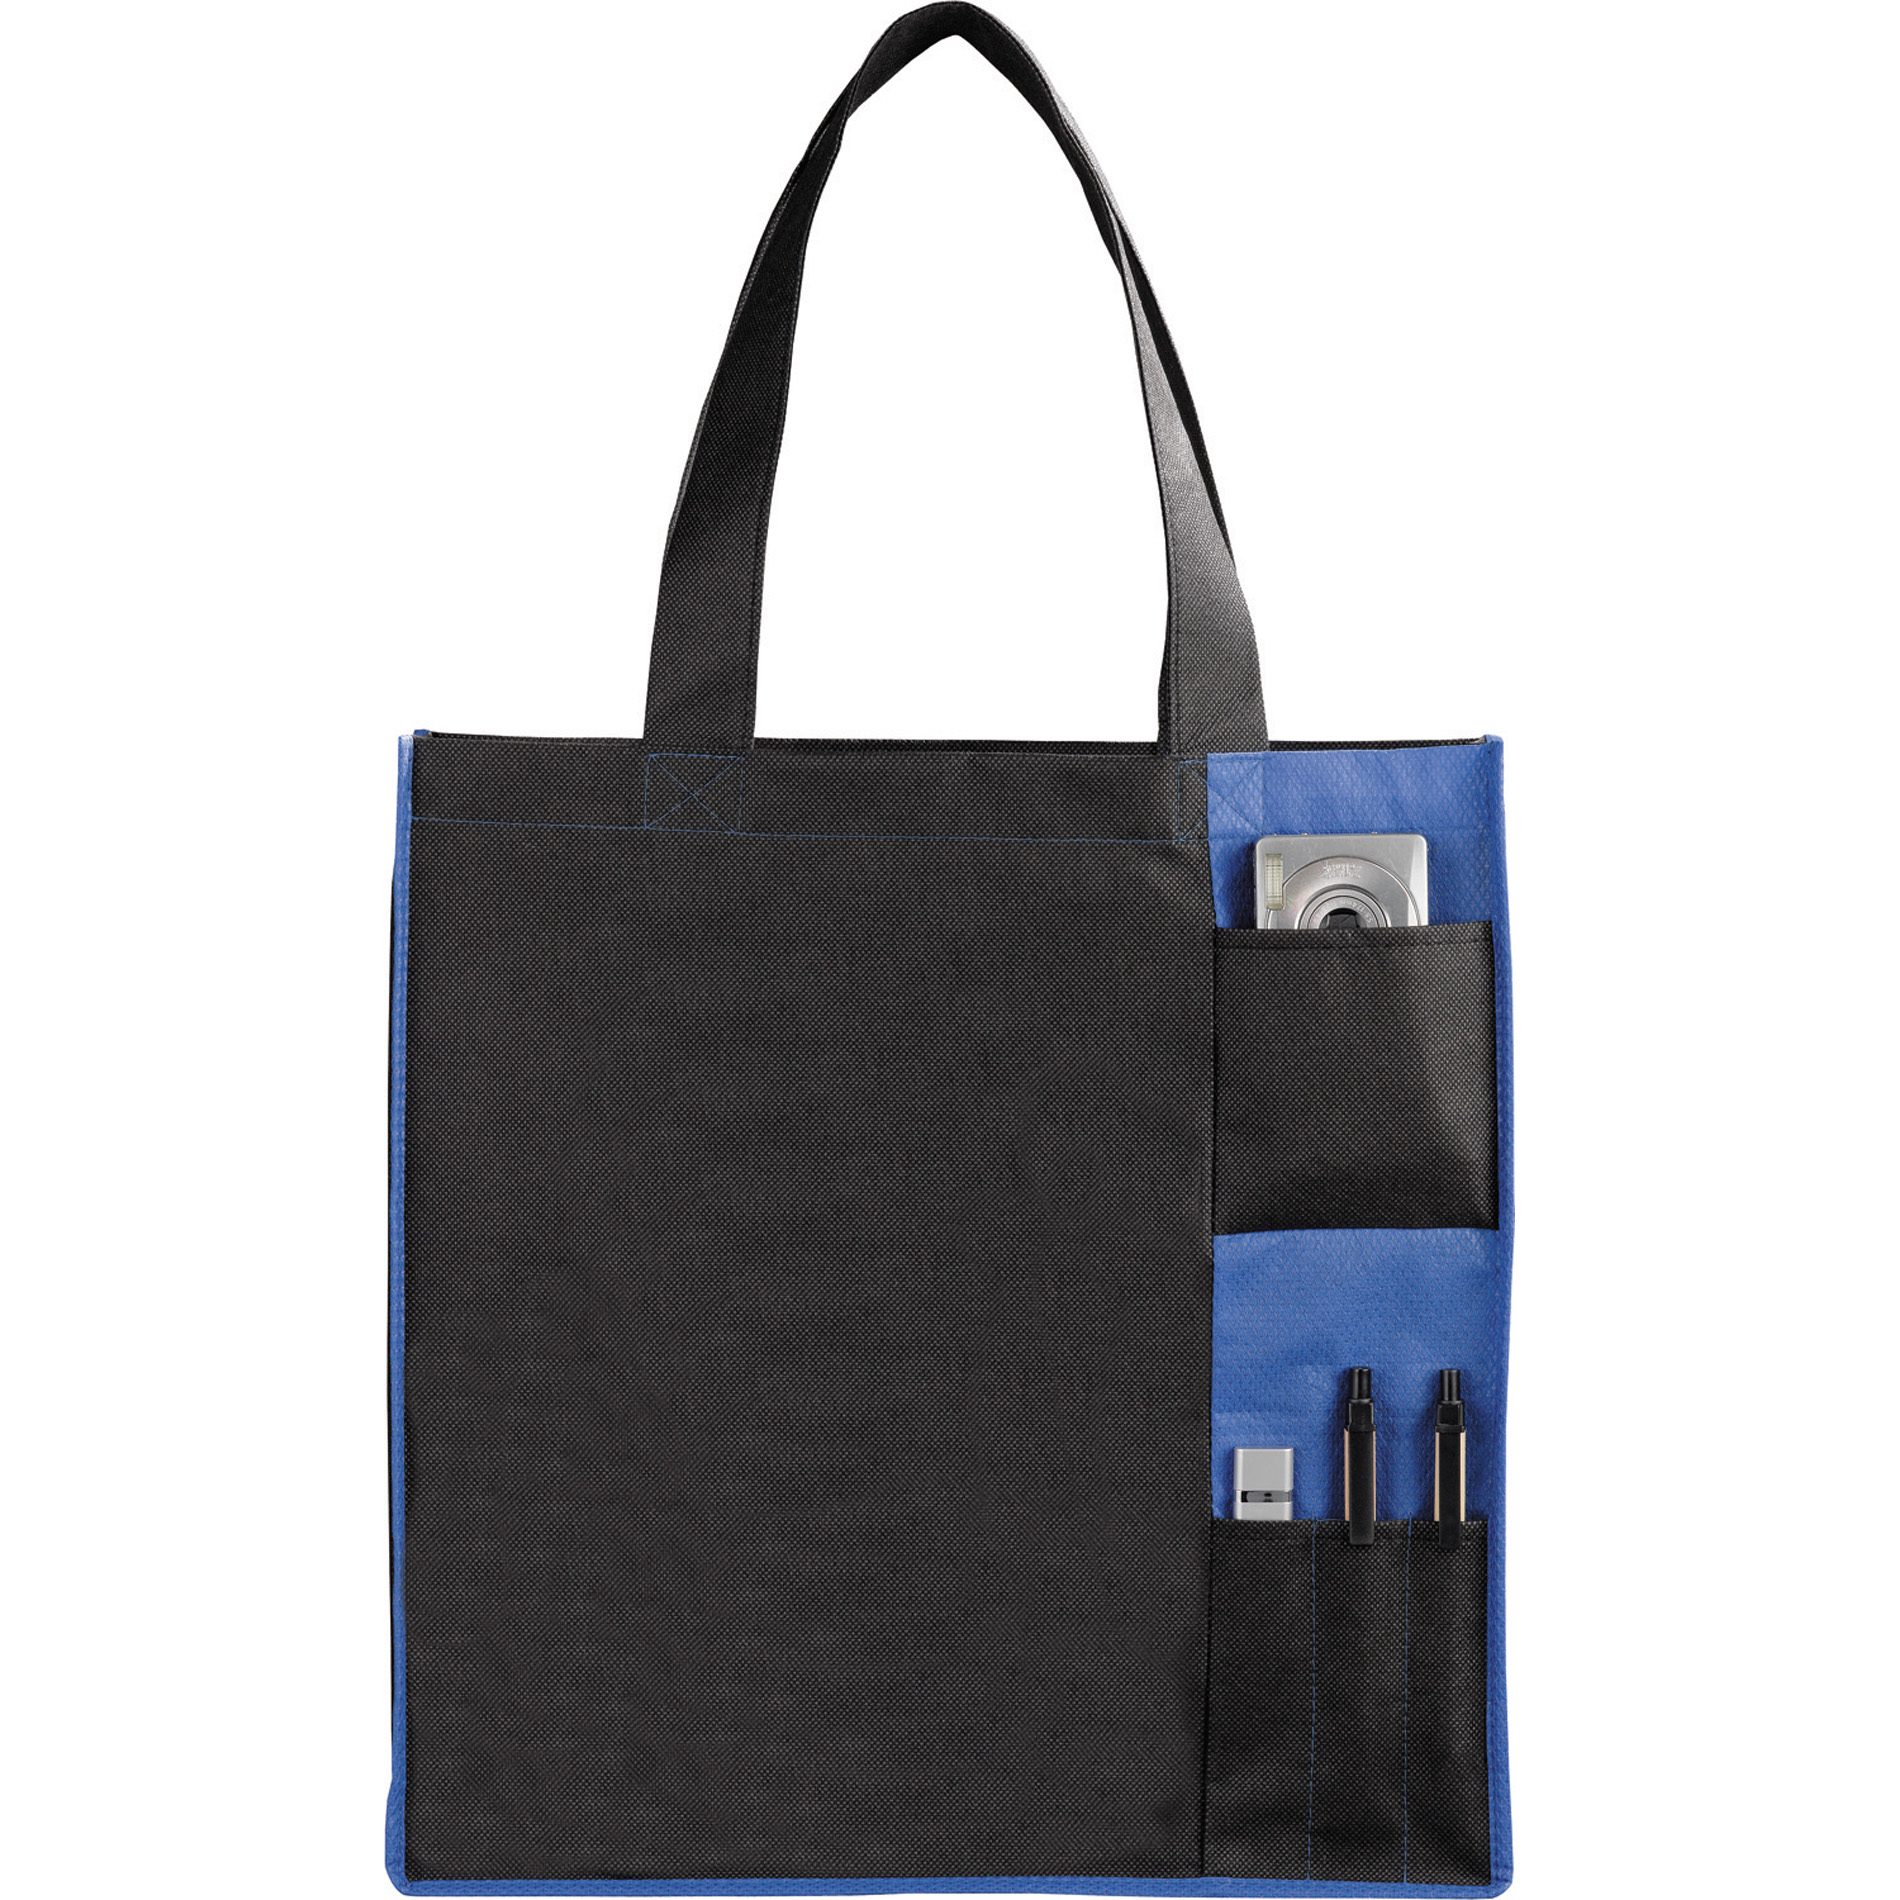 LEEDS 2150-21 - Non-Woven Pocket Convention Tote